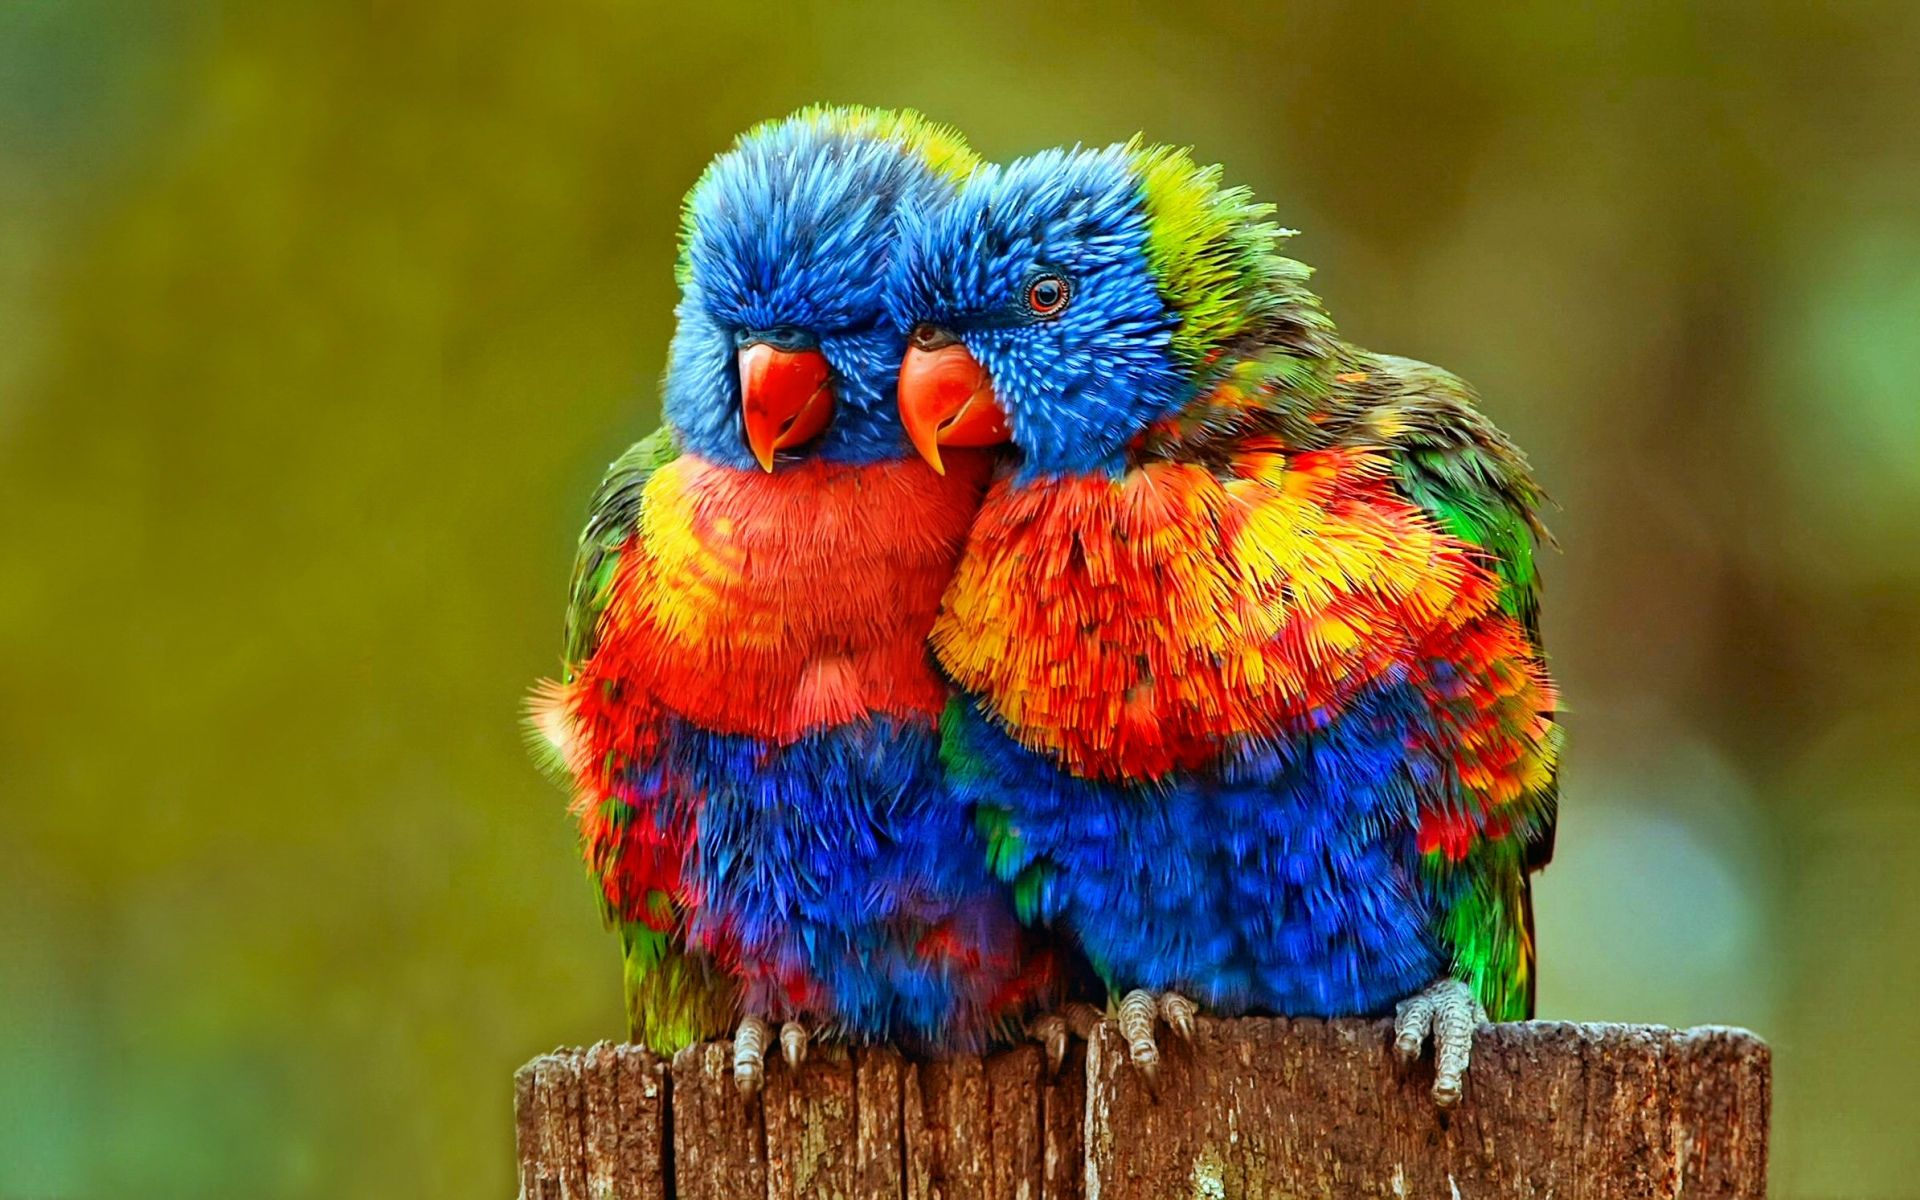 30 Cute Bird Pictures With Most Beautiful Colors Most Beautiful Birds Beautiful Birds Cute Birds